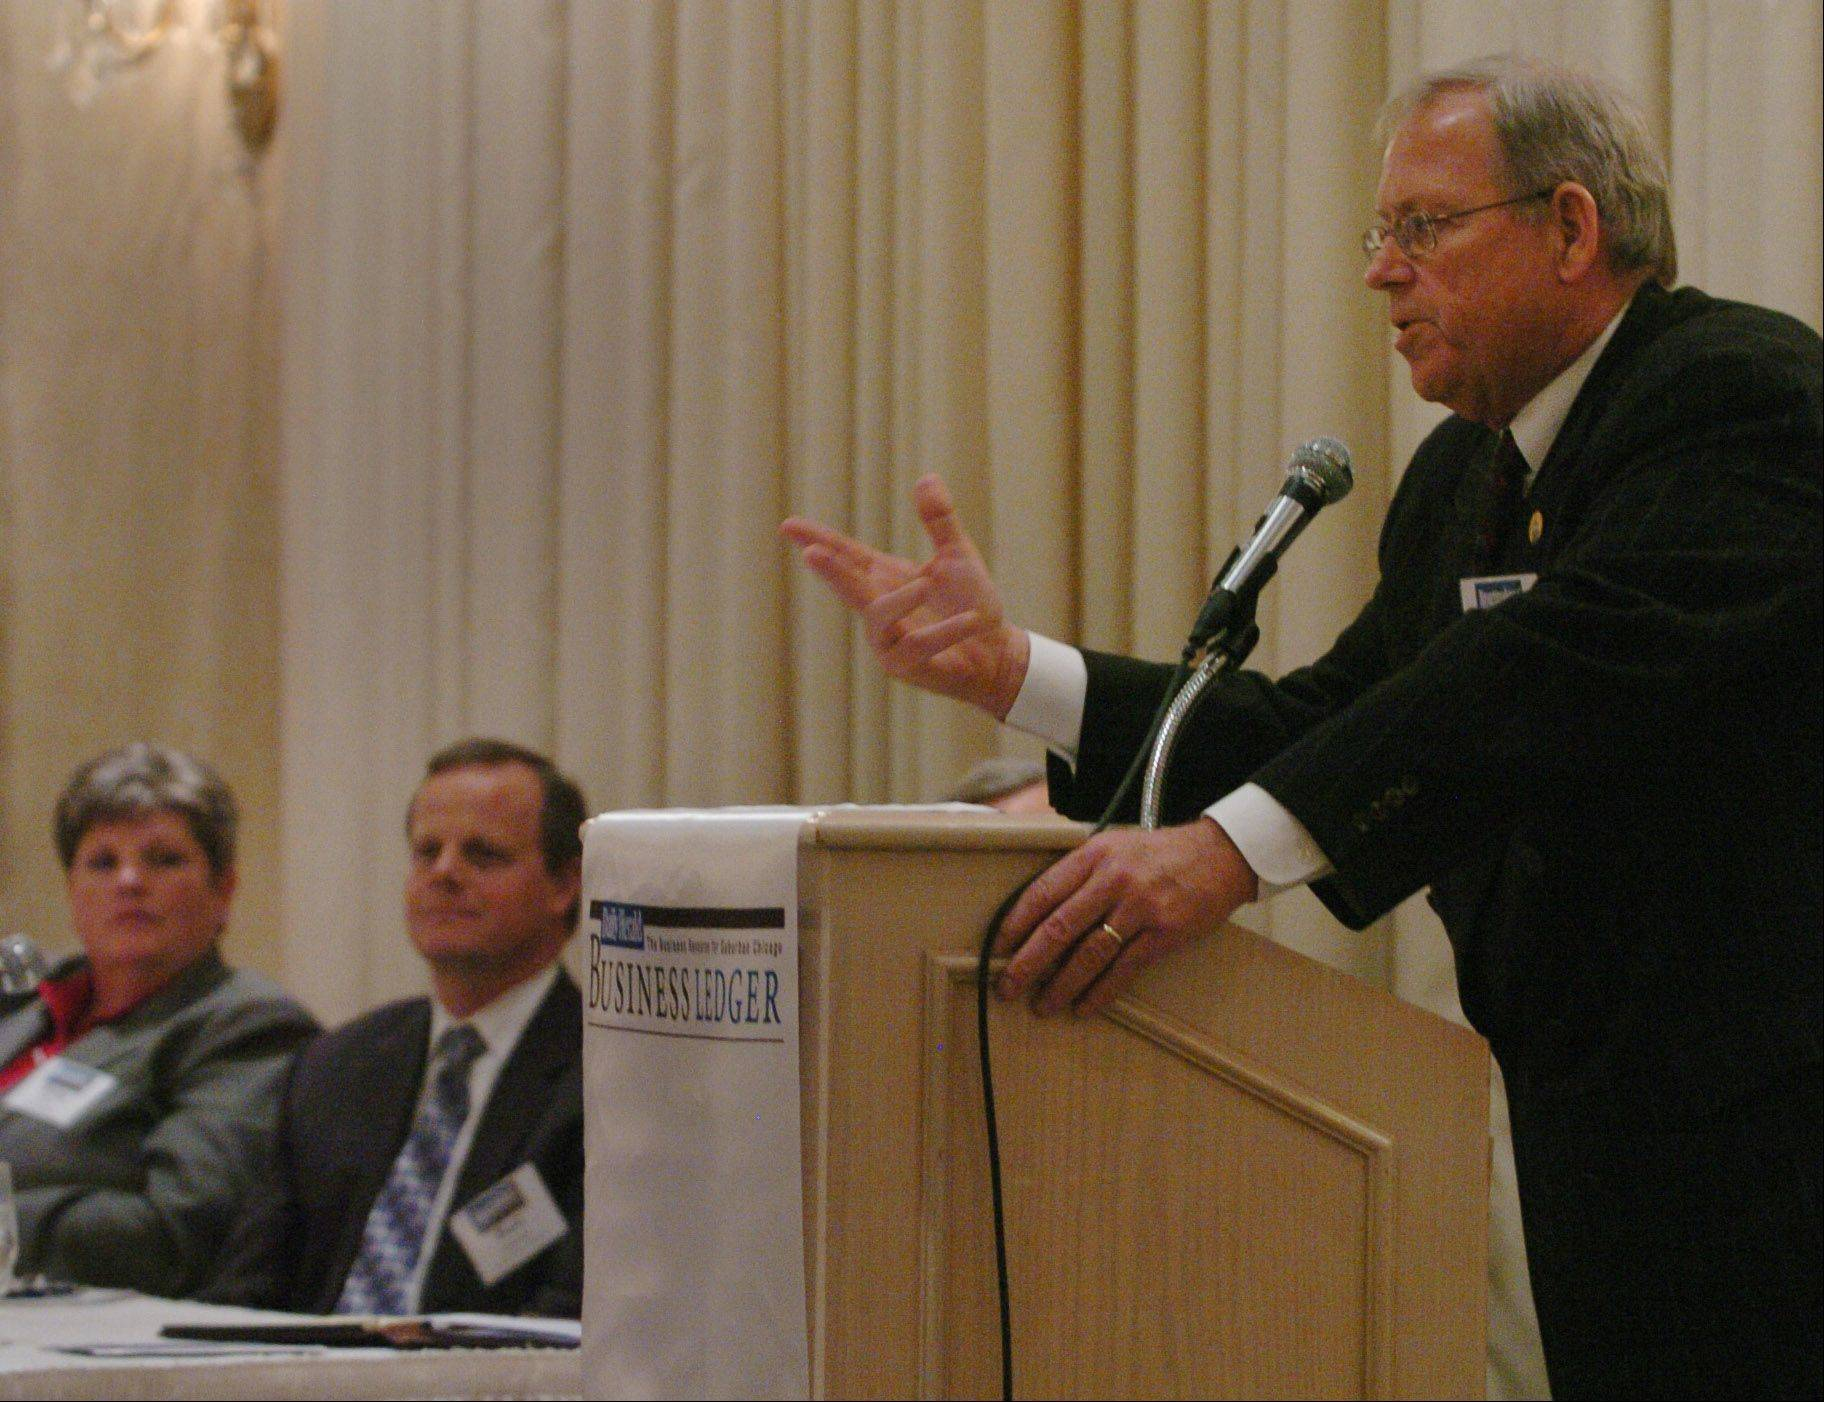 Douglas Whitley, president and CEO of the Illinois Chamber of Commerce, speaking at the Newsmakers Forum Business Outlook 2013 in Rolling Meadows, was one of the more optimistic experts about economic growth in 2013, although not necessarily speedy growth.